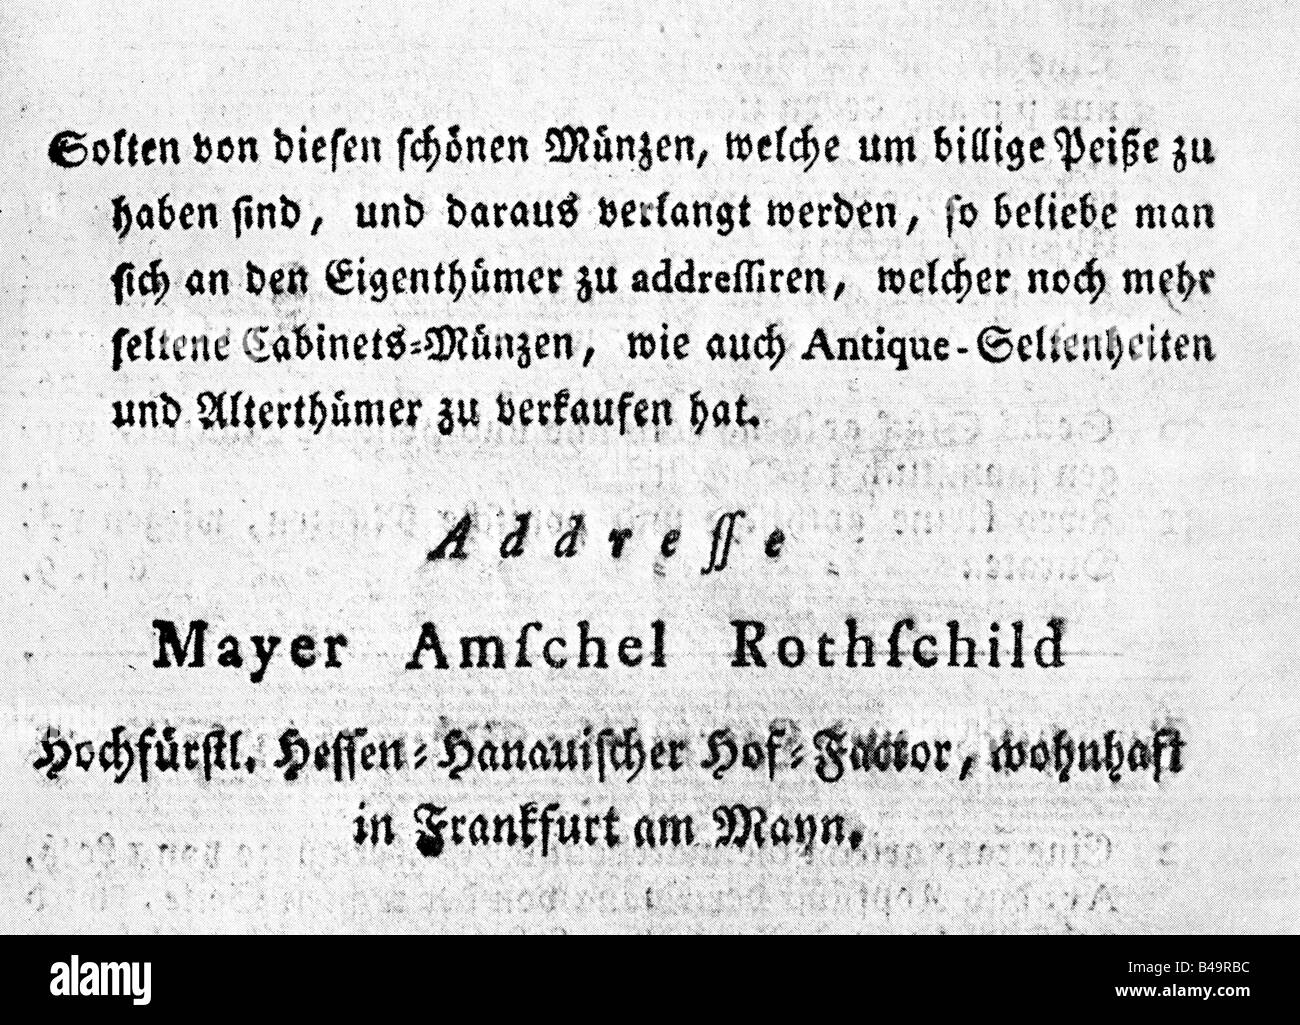 trade, catalogues & flysheets, catalogue of coins by Amschel Mayer Rothschild, Frankfurt am Main 1770 - 1780, - Stock Image